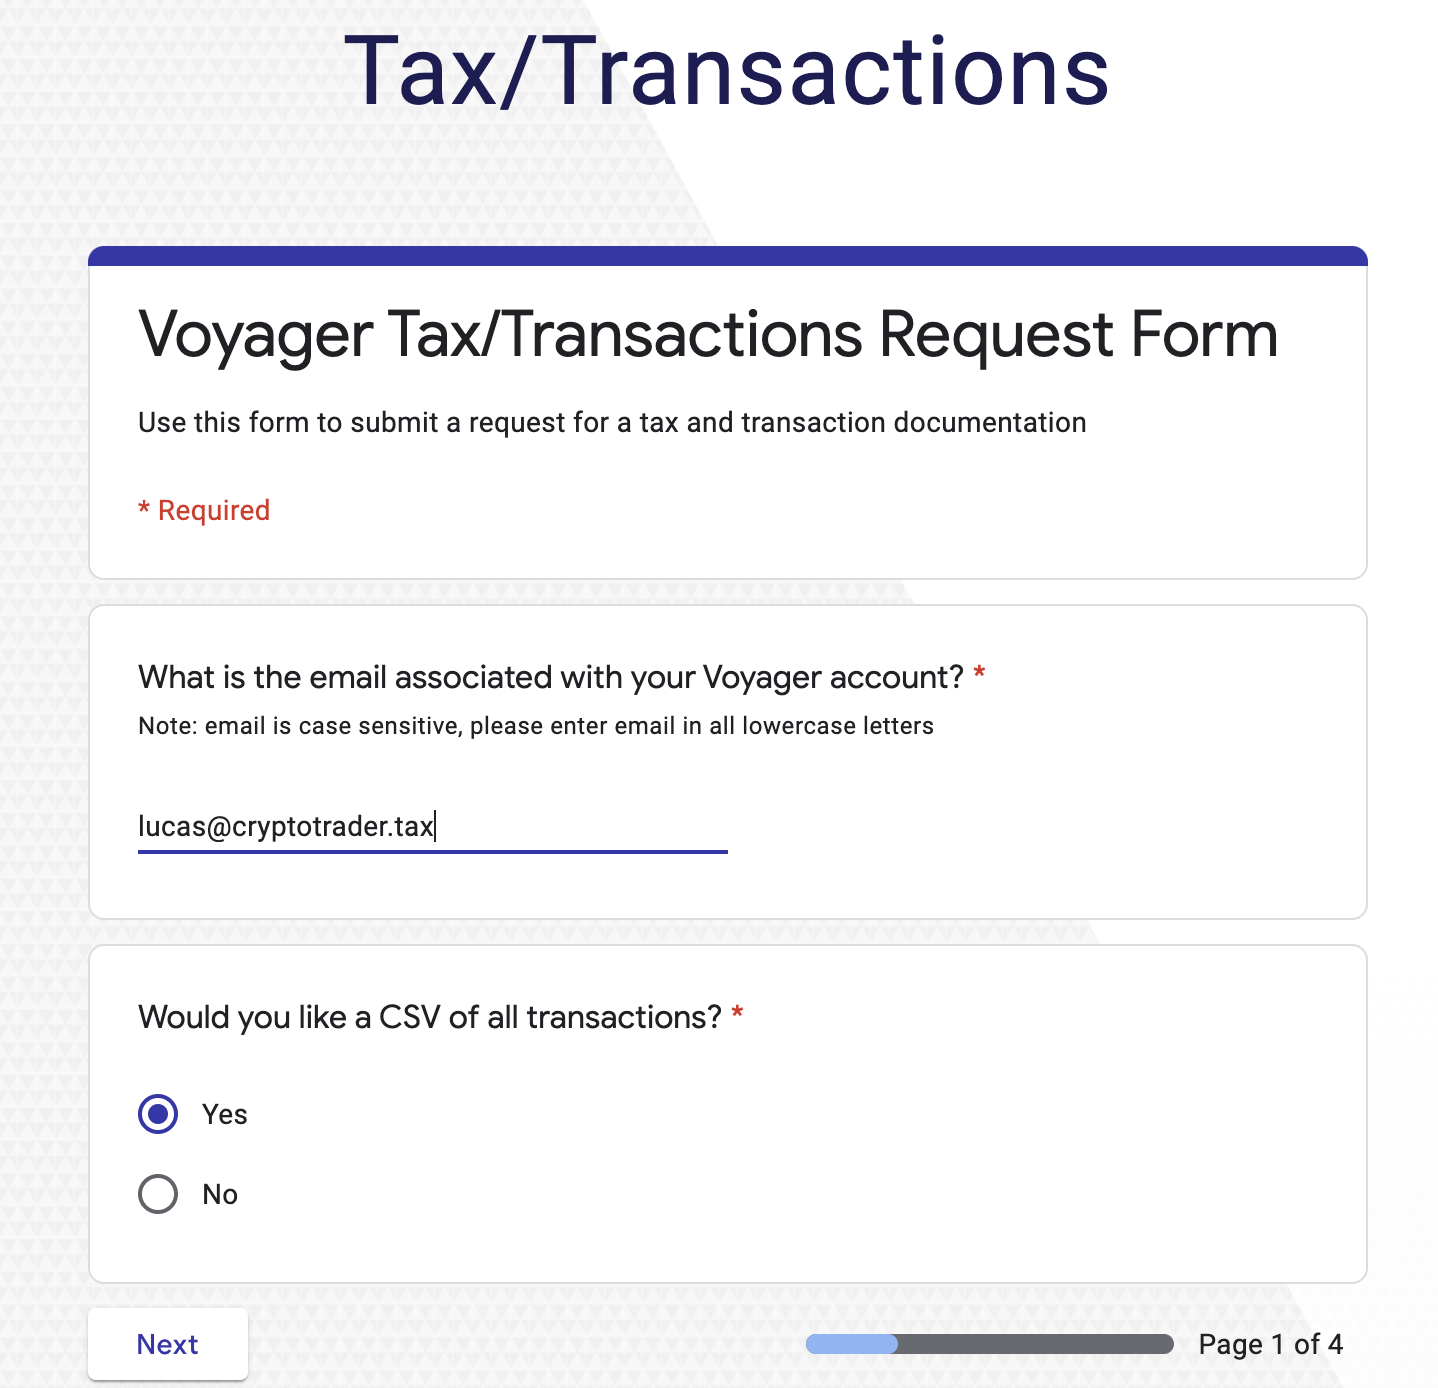 Voyager tax transactions